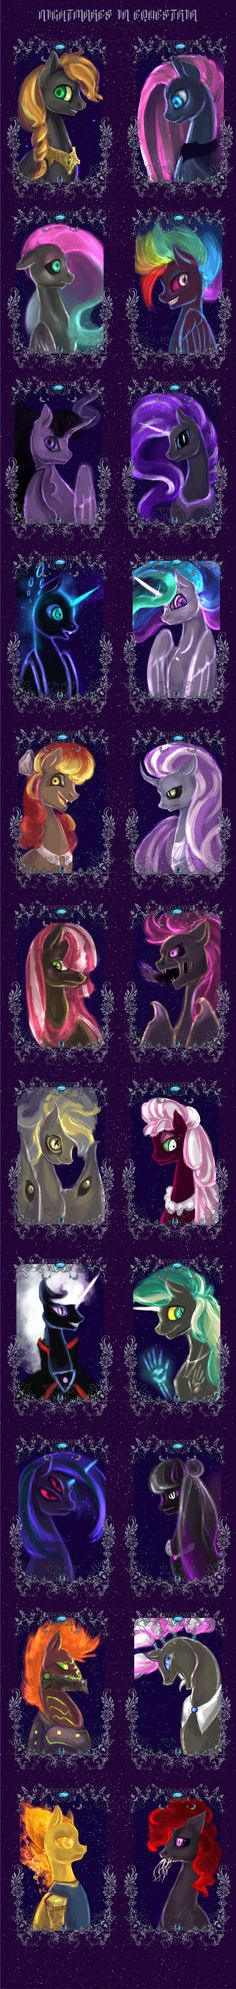 Nightmares in equestria by ElkaArt << Do I see Raven....? :3 (third up from the bottom on the left)